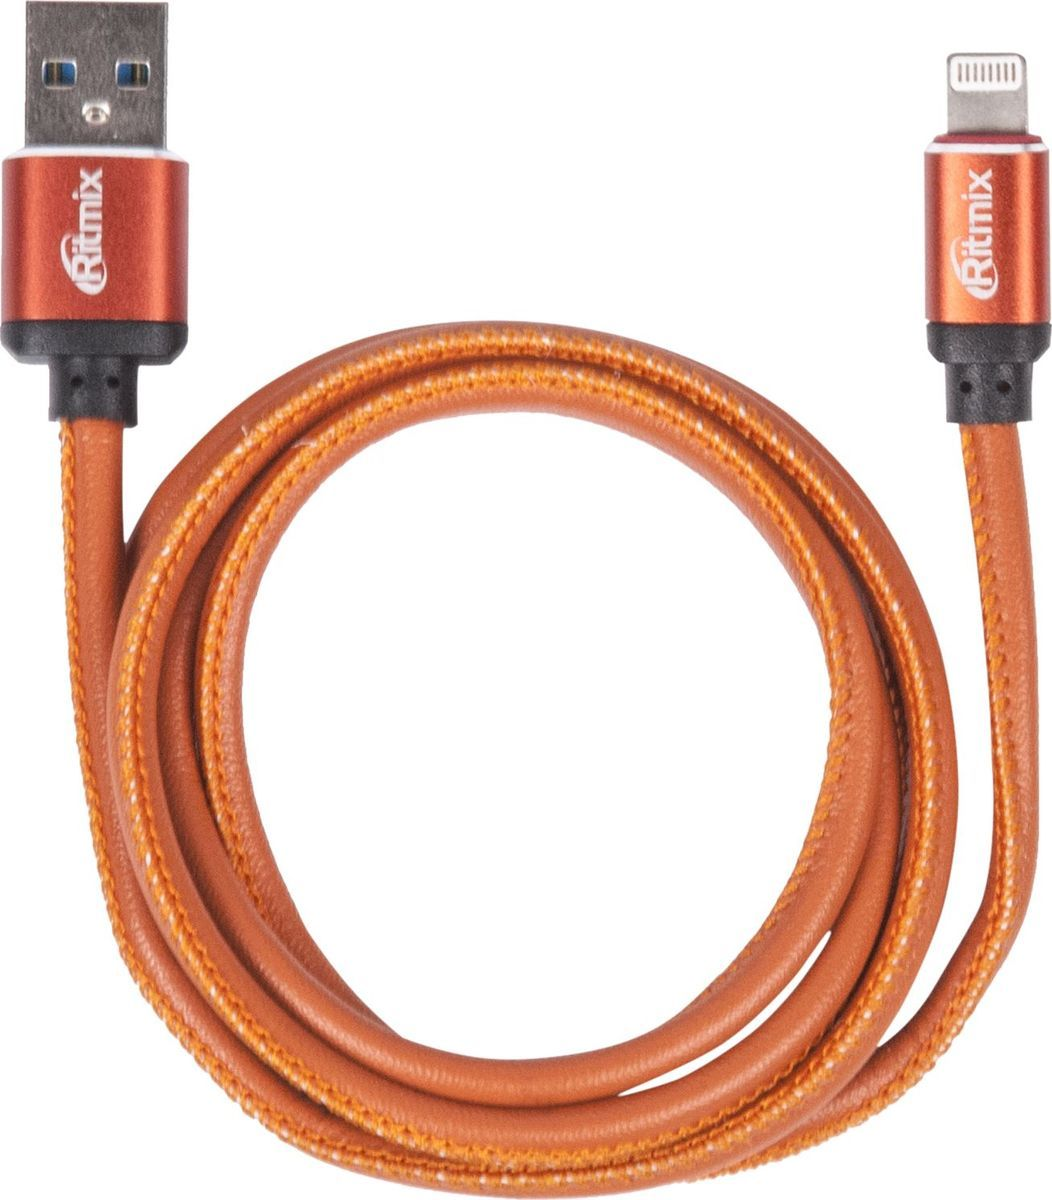 Ritmix RCC-425, Leather кабель USB-Lightning (1 м) кабель lightning 8pin usb ritmix rcc 422 brown для синхронизации зарядки 1м нейлон опл мет коннекторы